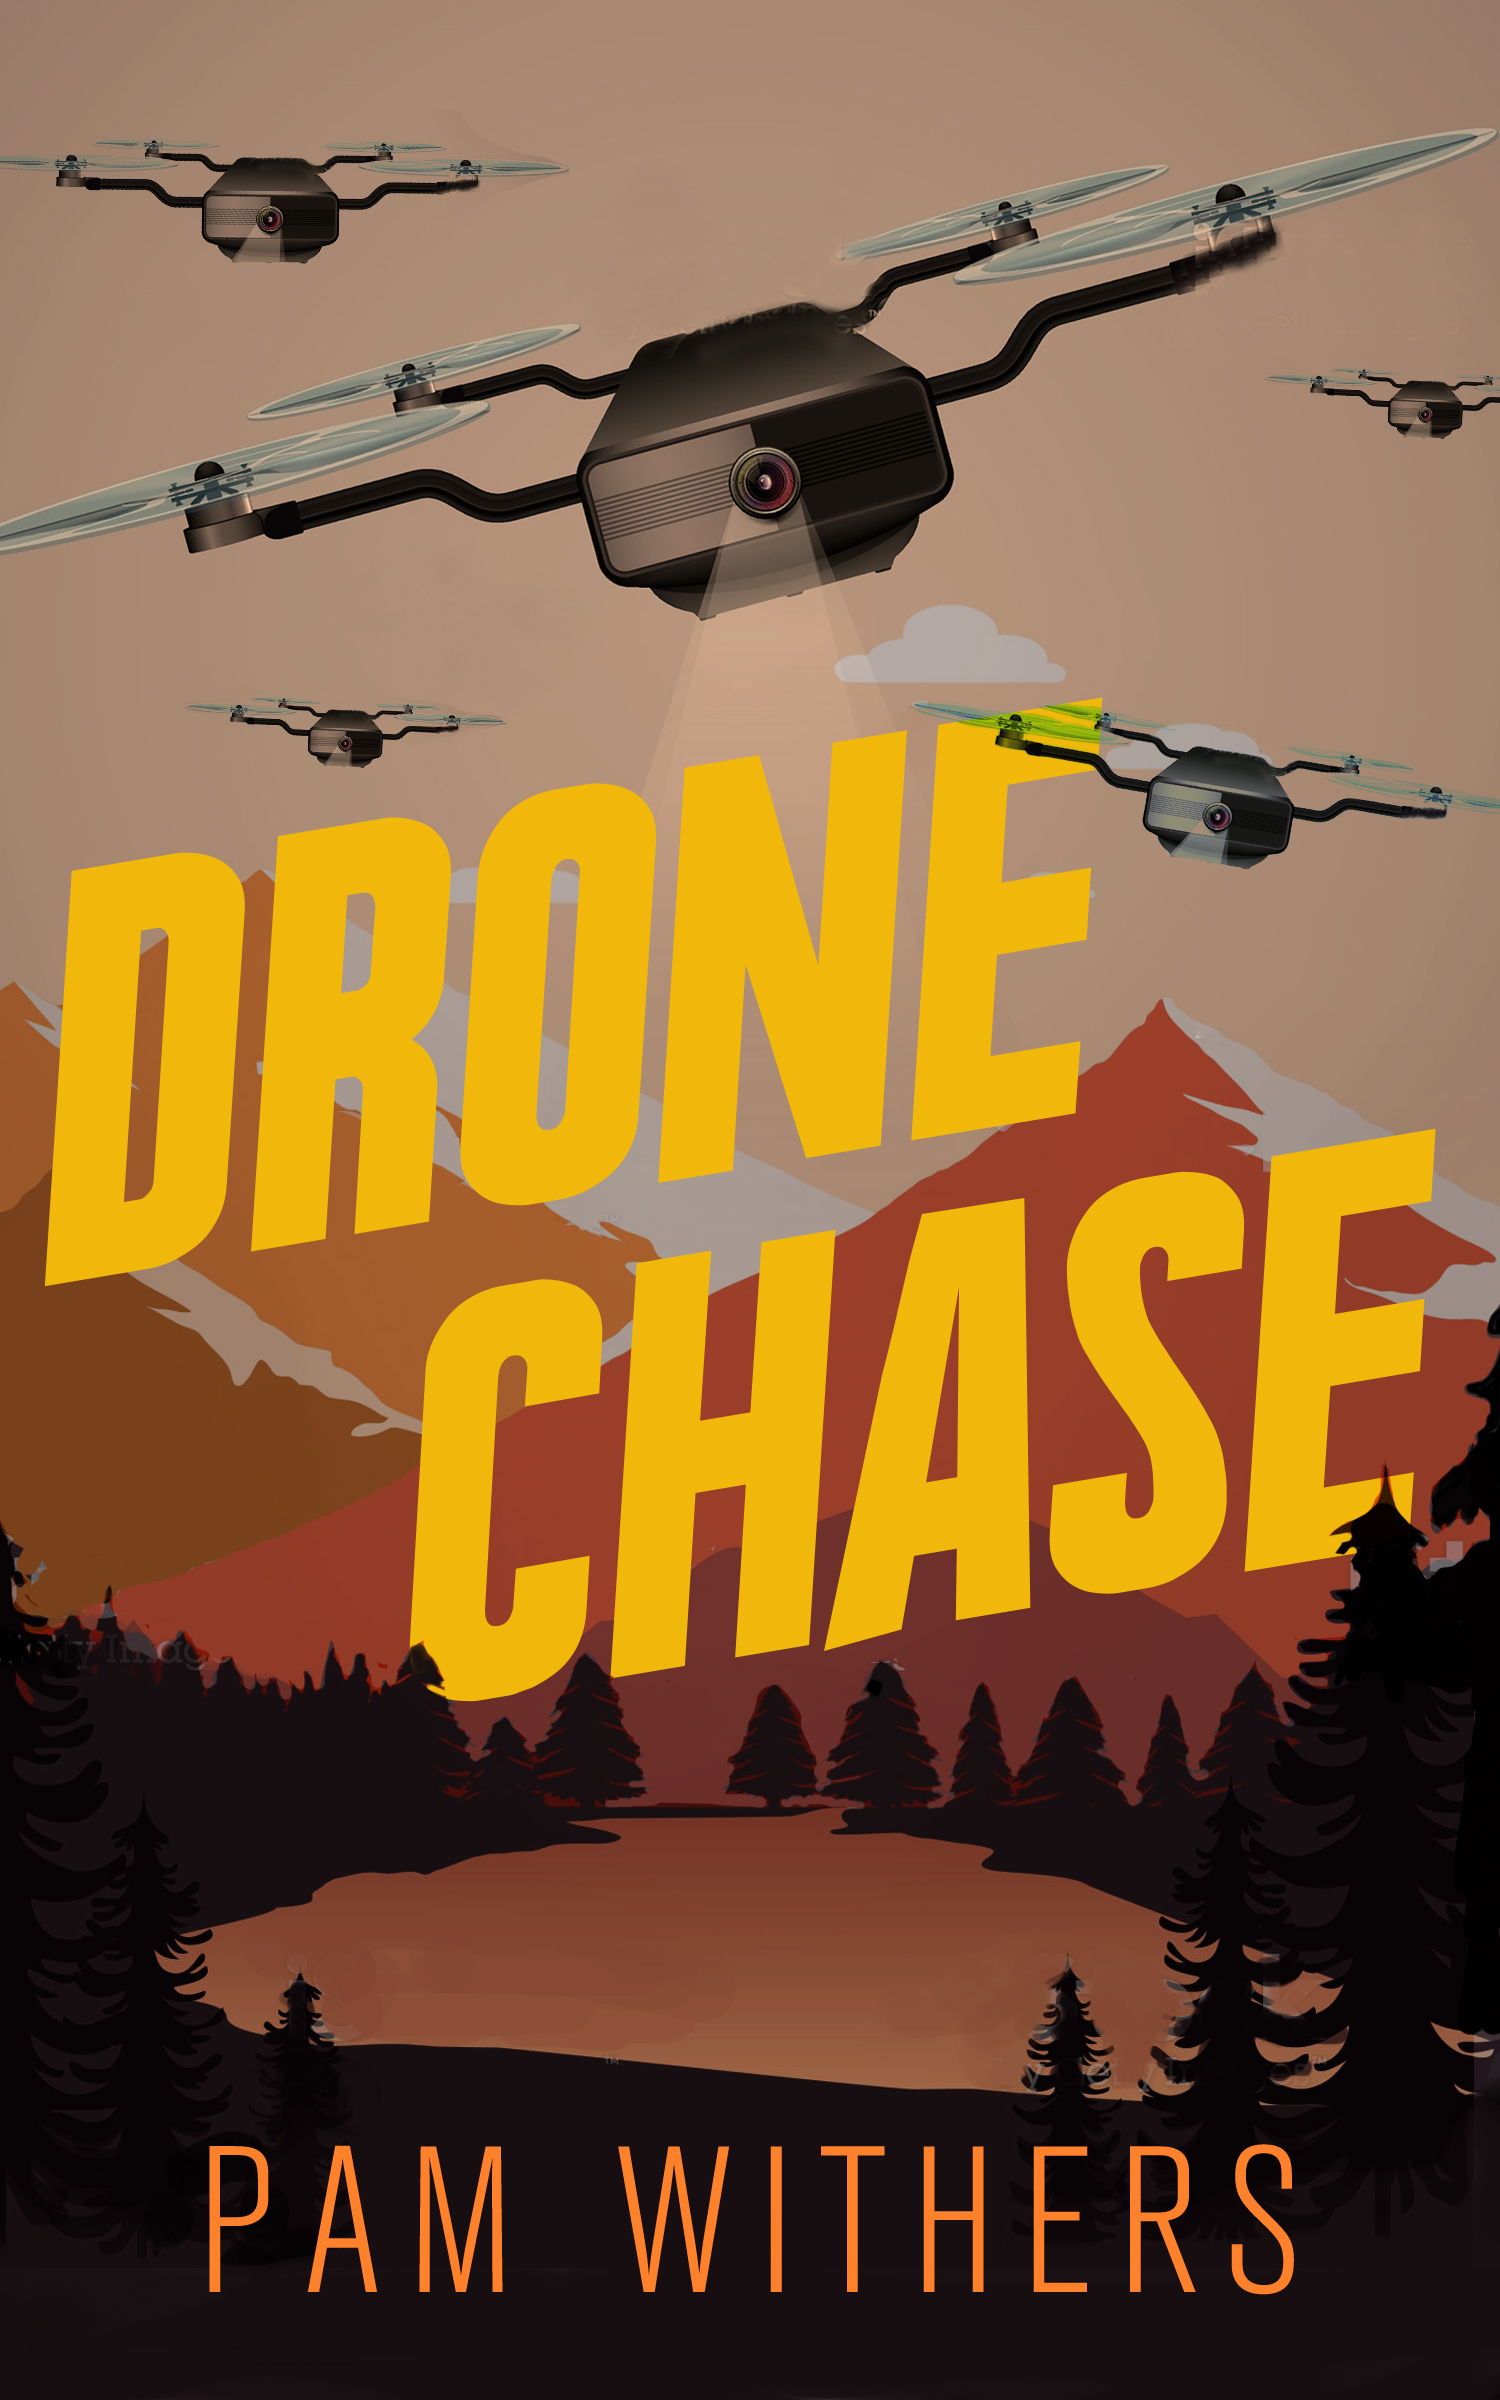 Drone Chase, by Pam Withers